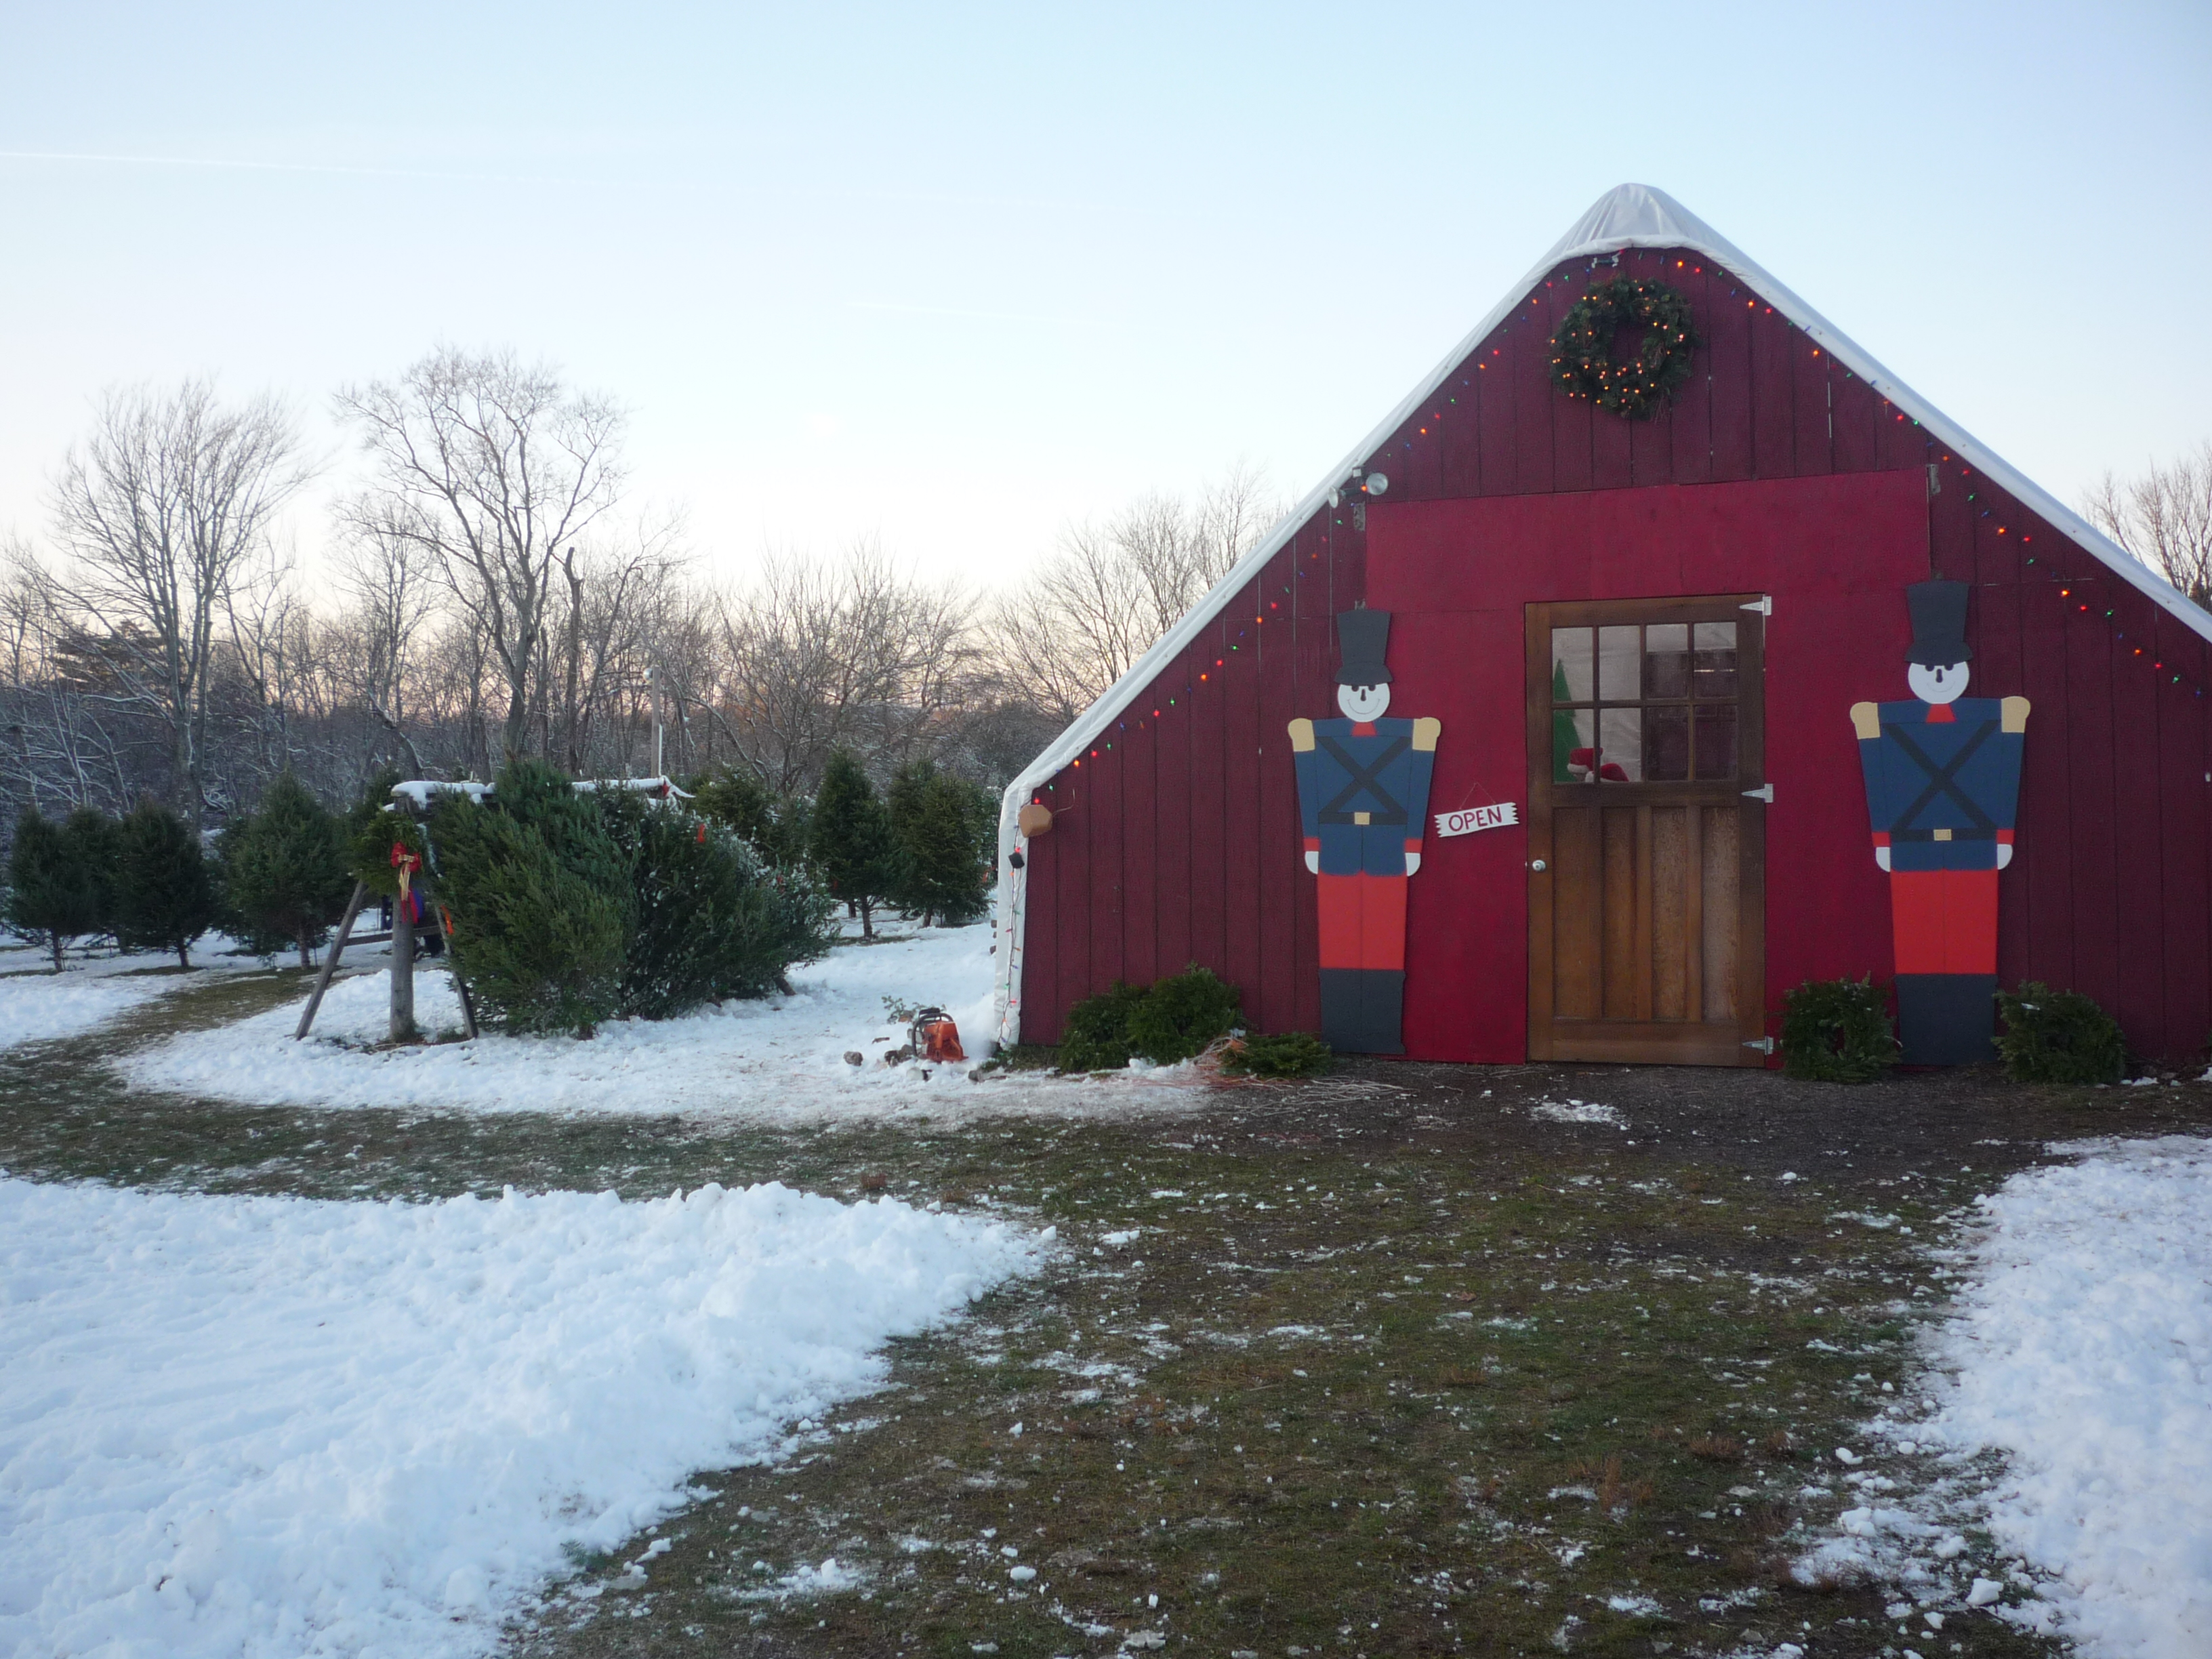 Christmas Trees and a Special Holiday Feeling at Adams Farm, Cumberland, R.I.